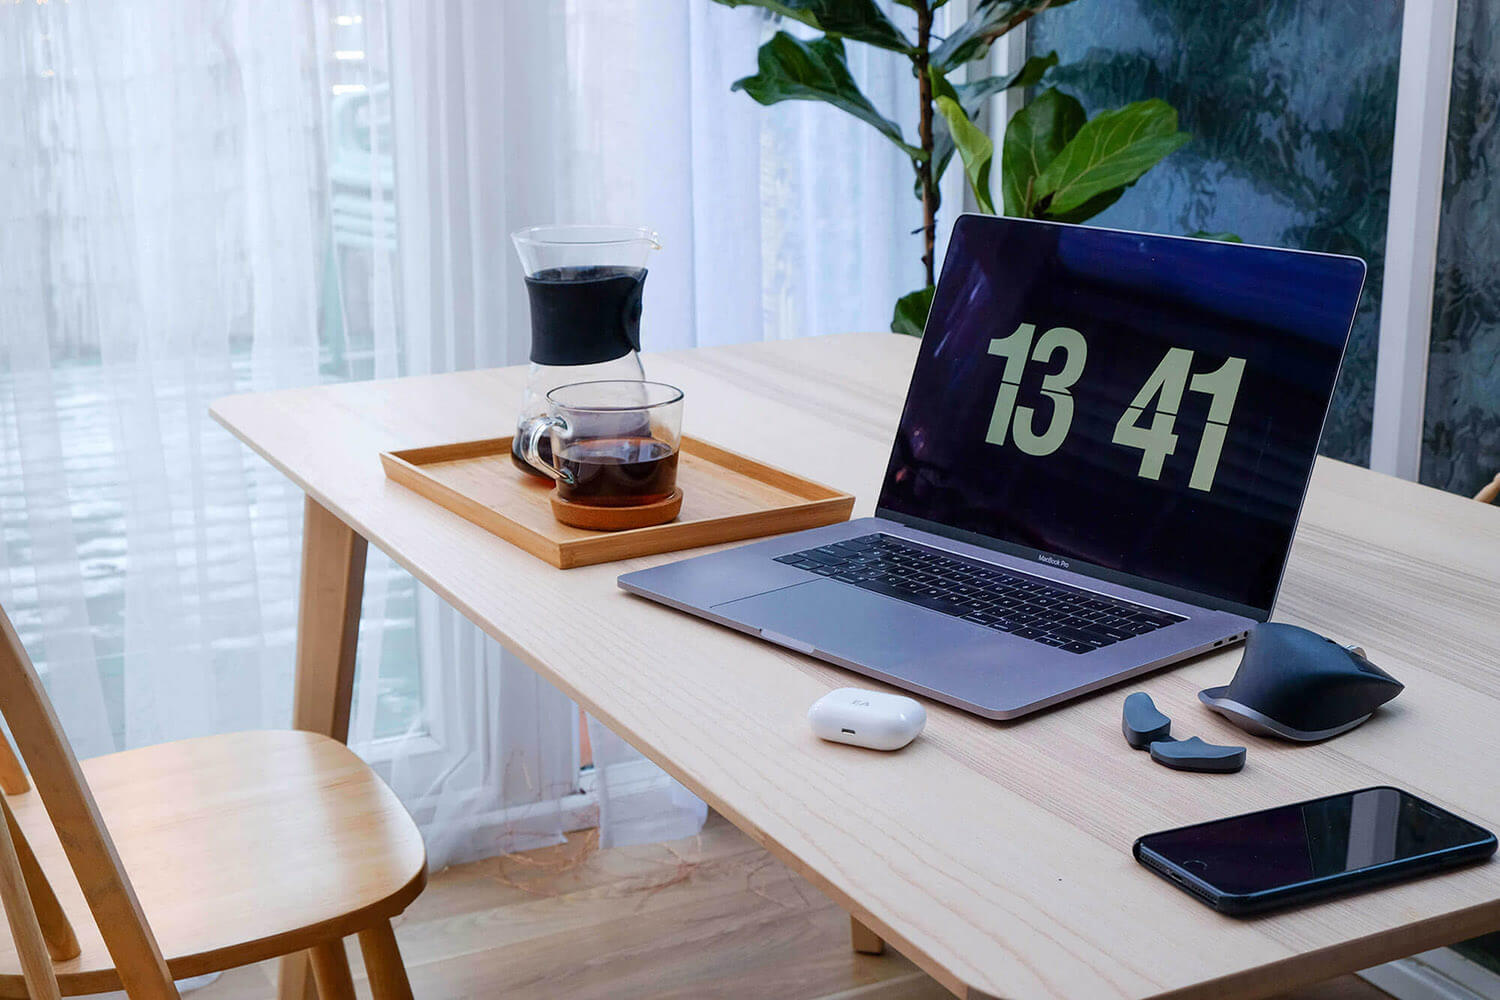 Eli's laptop on a table, next to a carafe filled with coffee